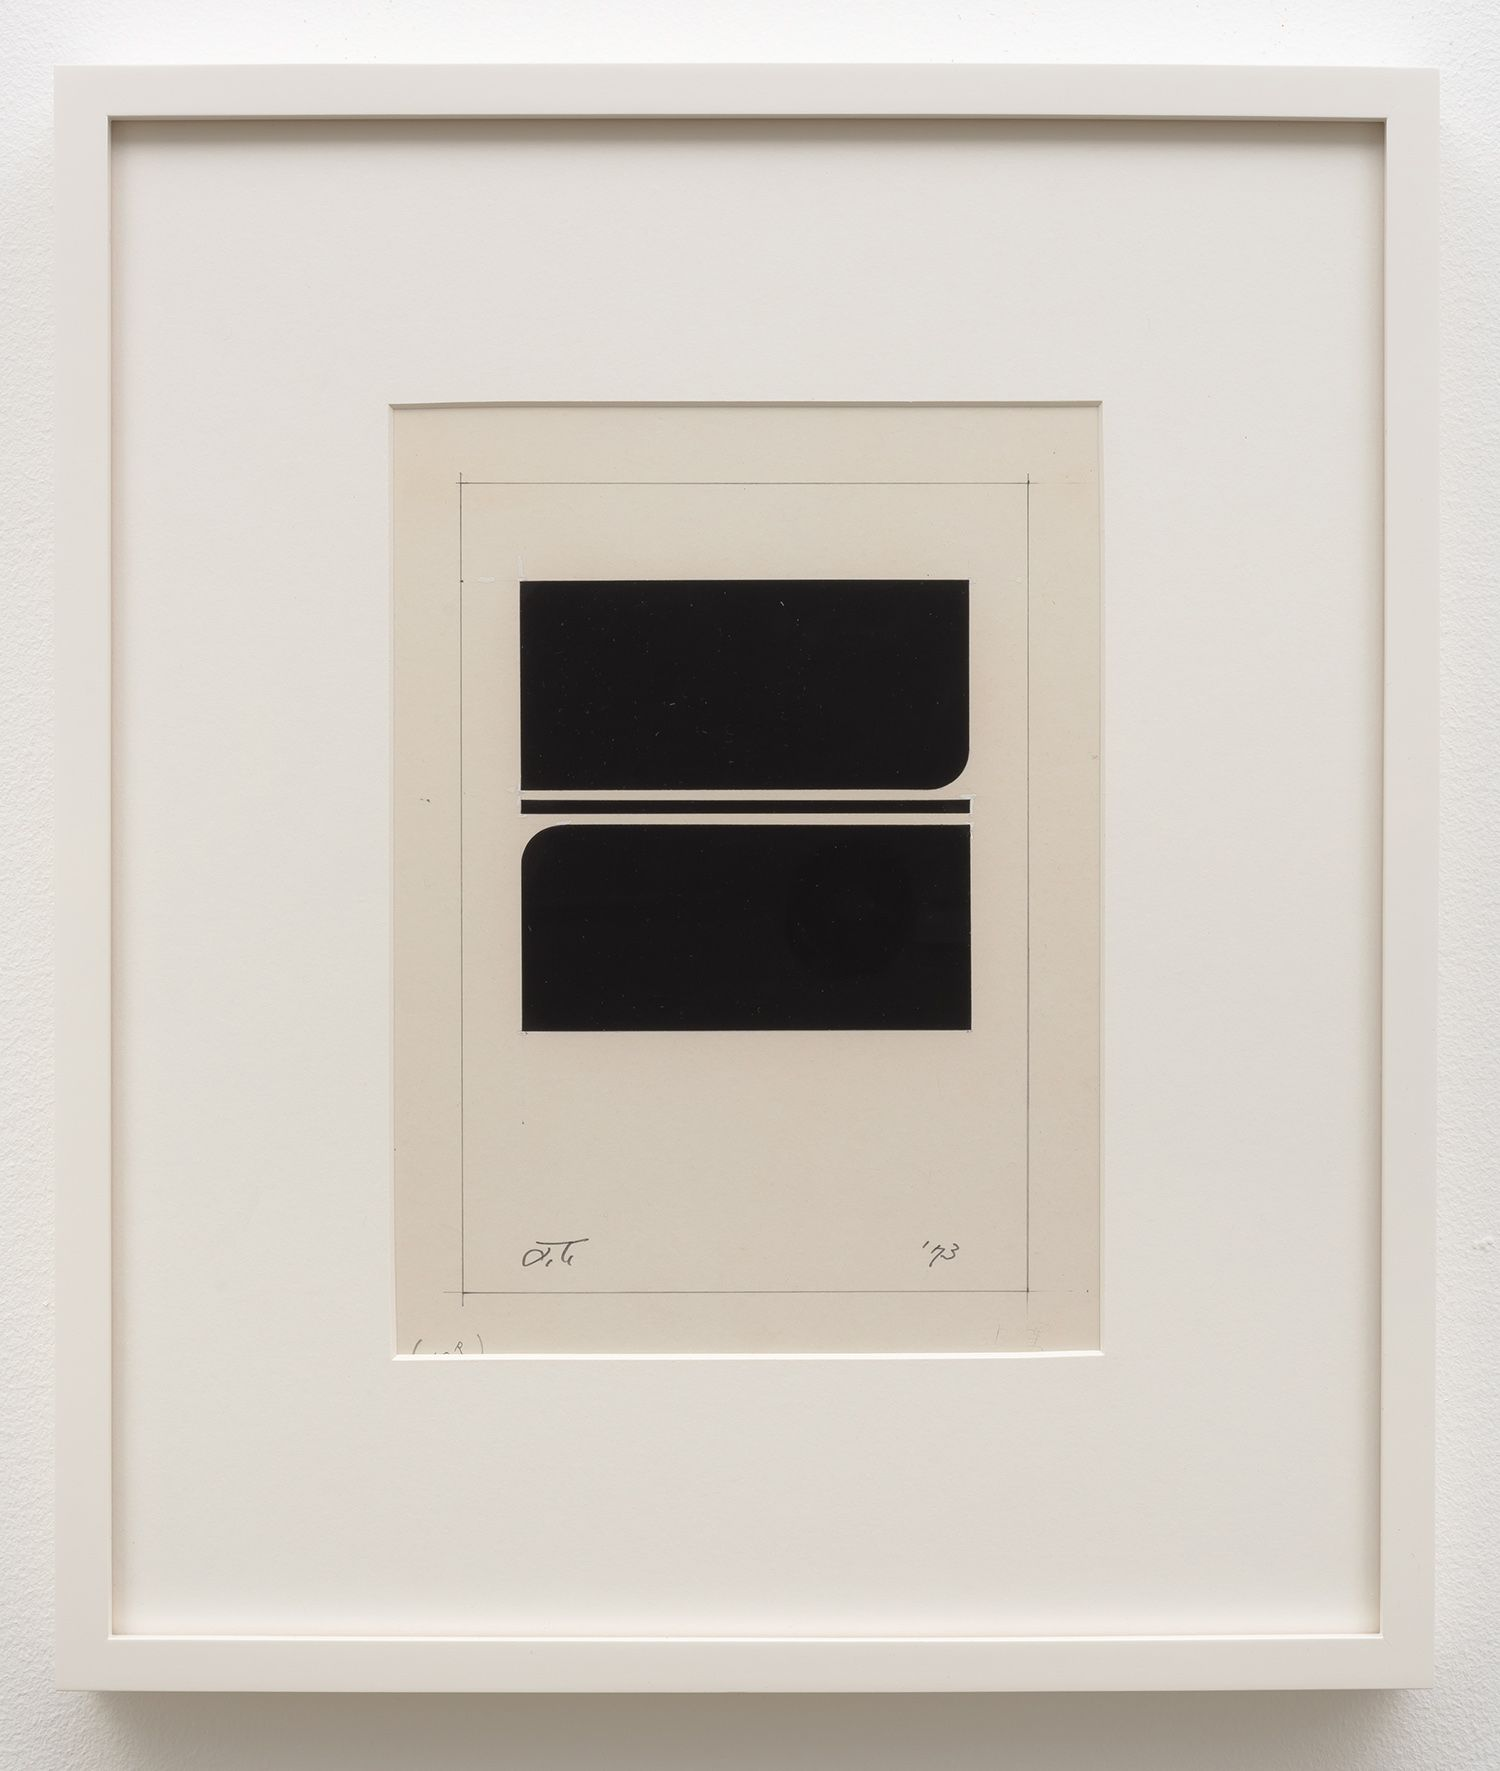 Jiro Takamatsu In the form of square, No. 586, 1973